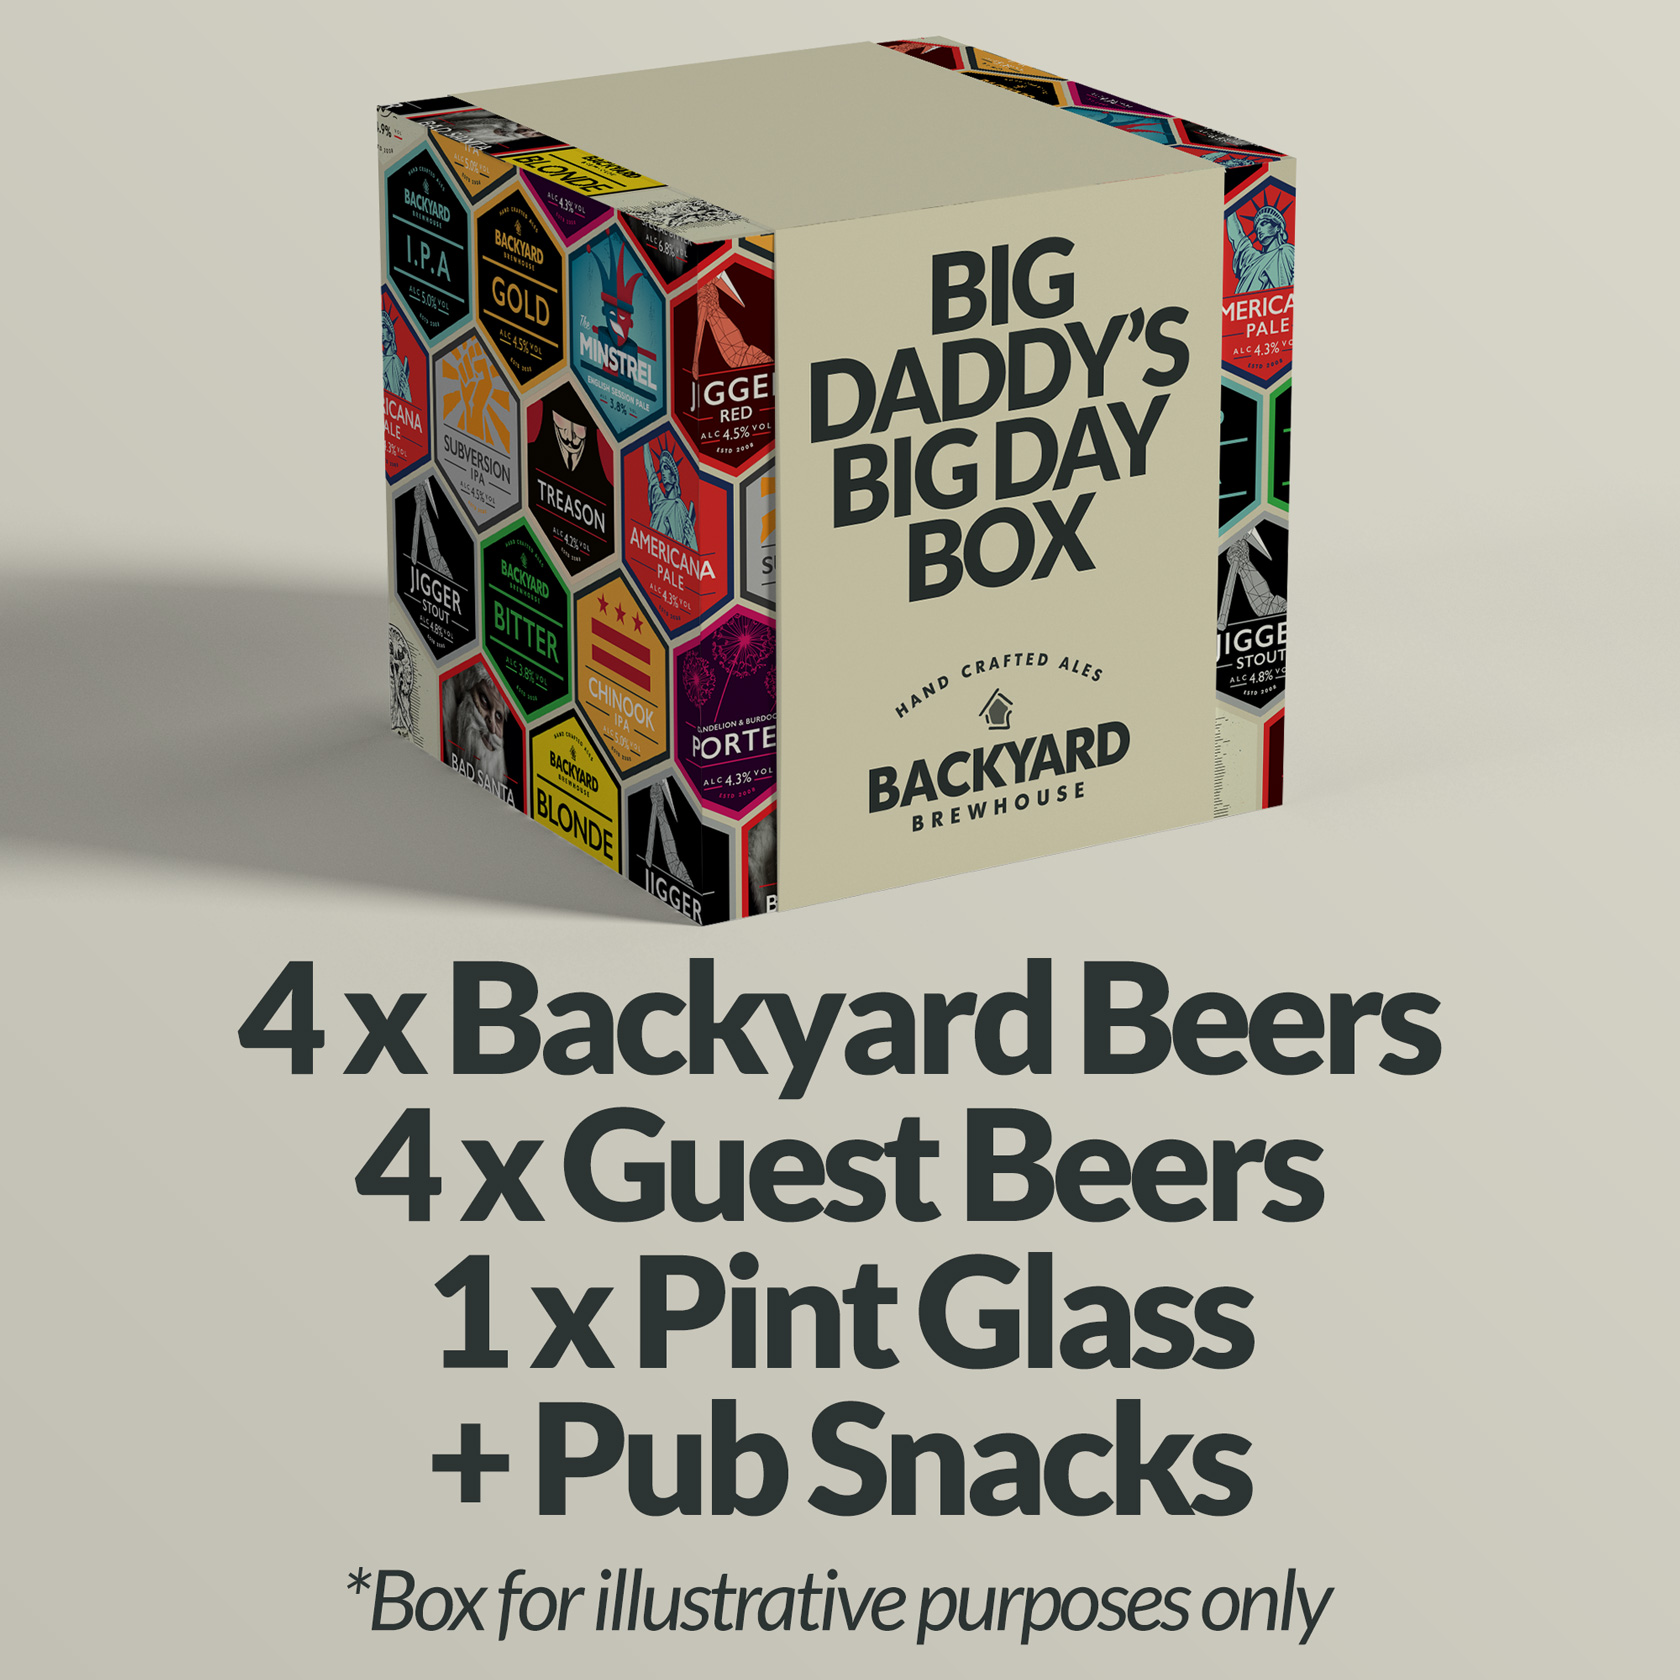 Big Daddy's Big Day Box